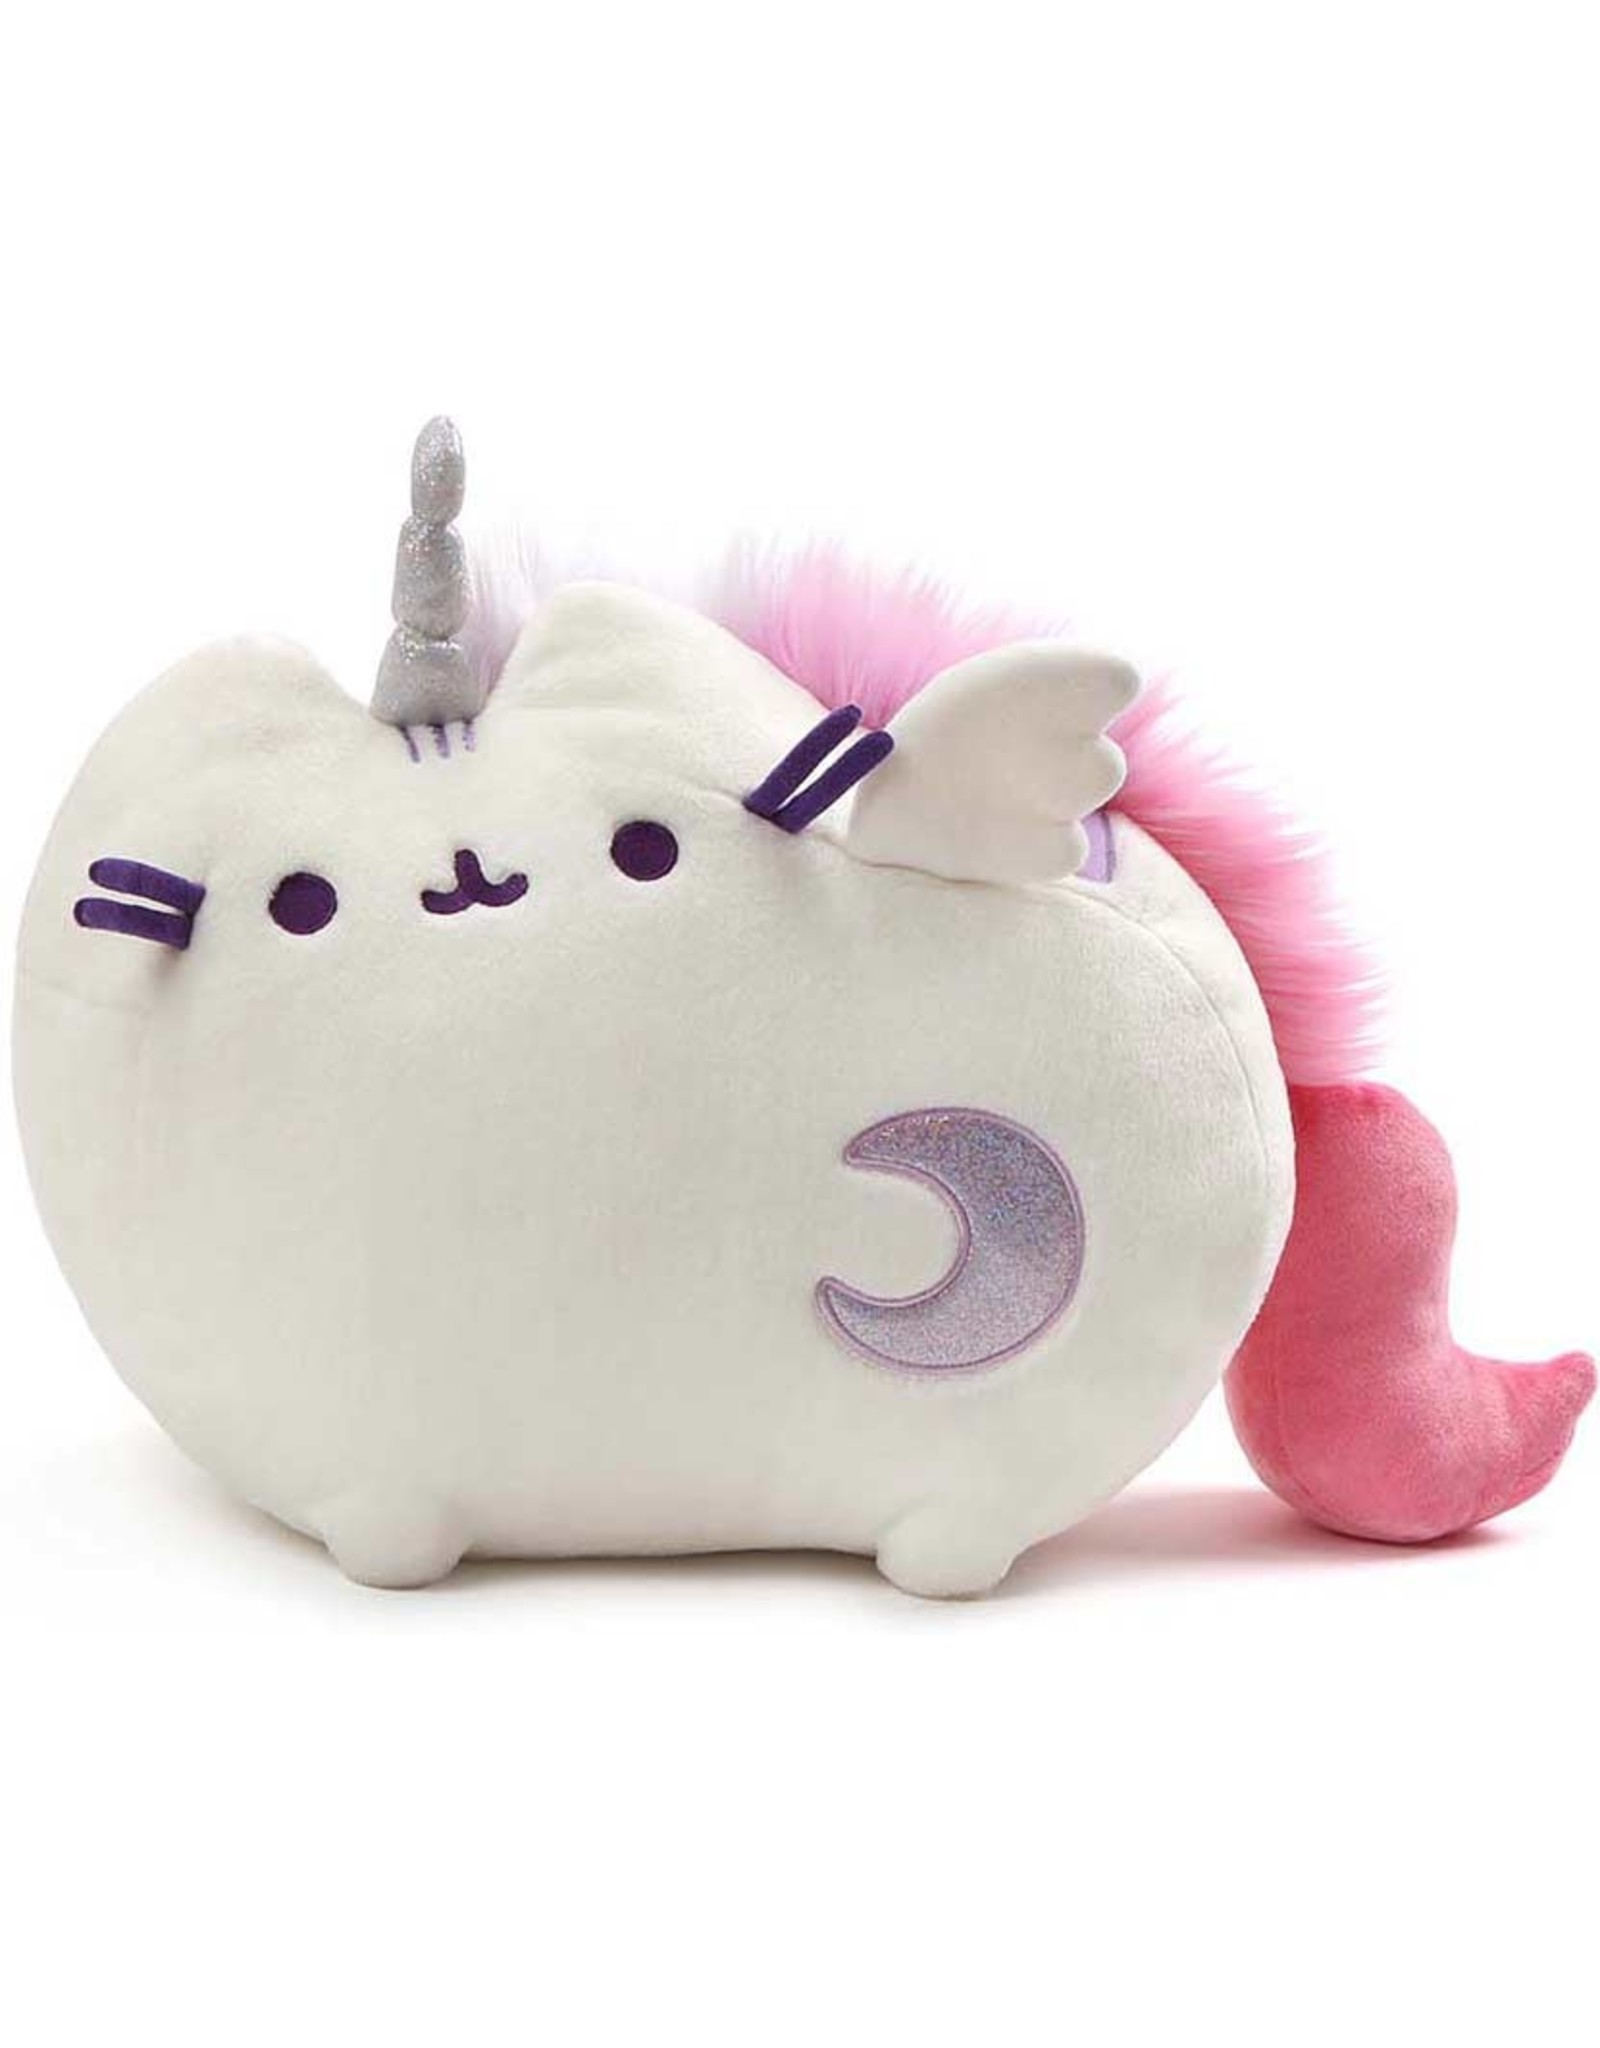 Gund/Spinmaster SUPER PUSHEENICORN